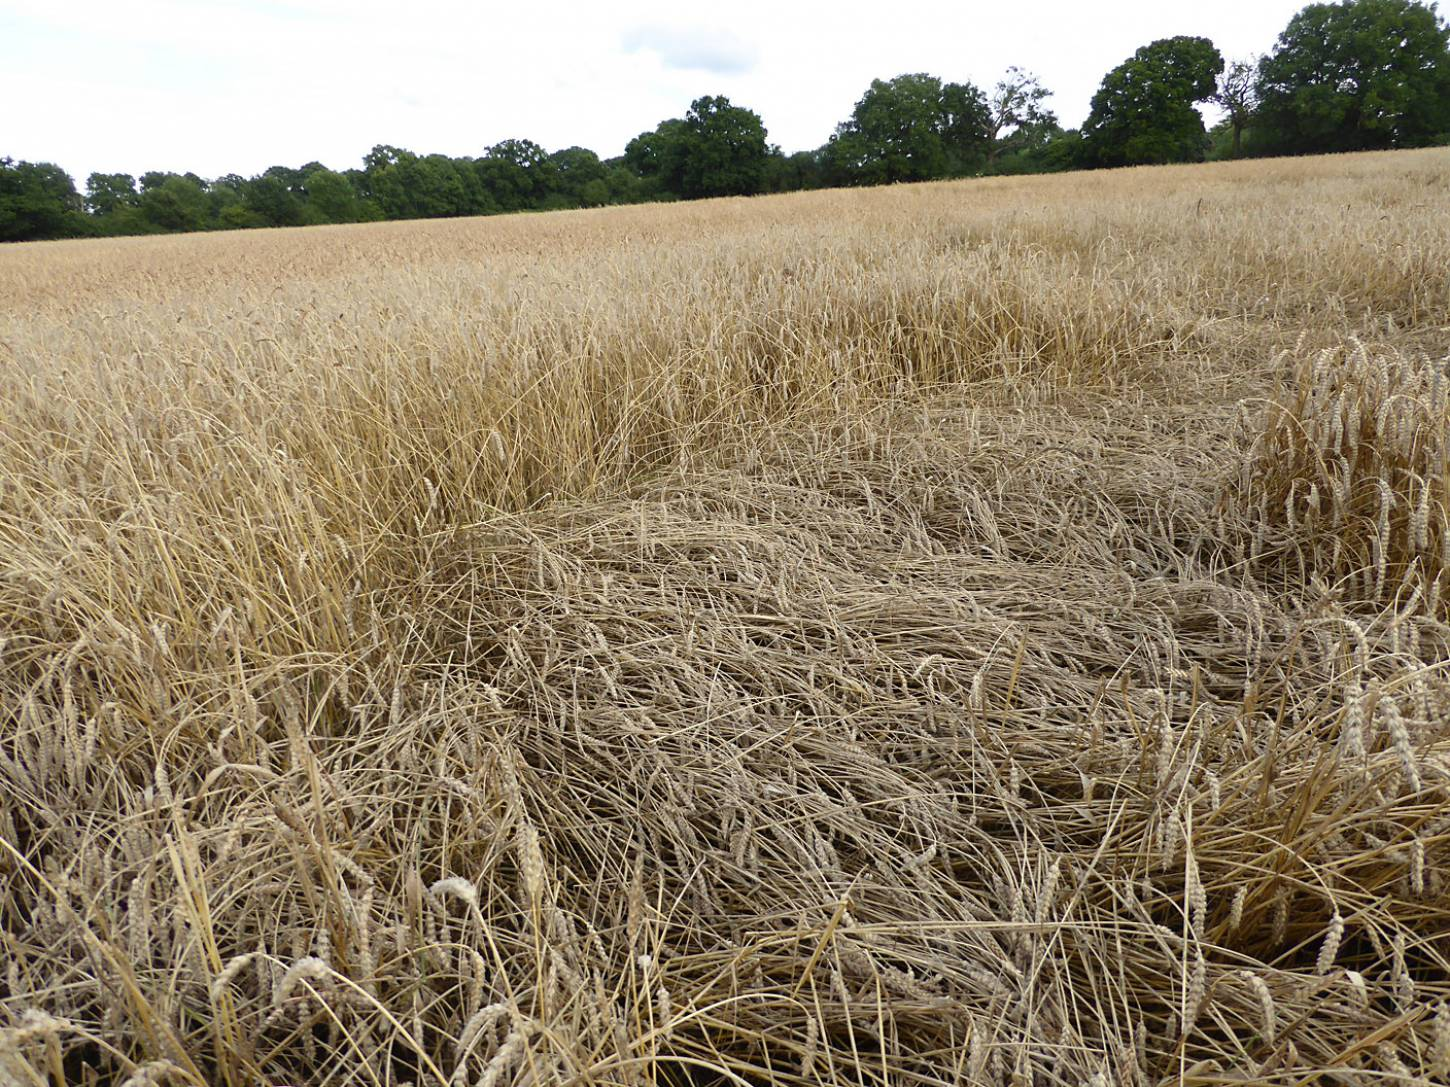 some lodging on Ble de Haie, farm review pre-harvest '17 - 6:32pm&nbsp;1<sup>st</sup>&nbsp;Aug.&nbsp;'17  <a href='http://maps.google.com/?t=h&q=51.209353,-0.086822&z=18&output=embed' target=_blank><img src='http://www.brockwell-bake.org.uk/img/marker.png' style='border:none;vertical-align:top' height=16px></a>